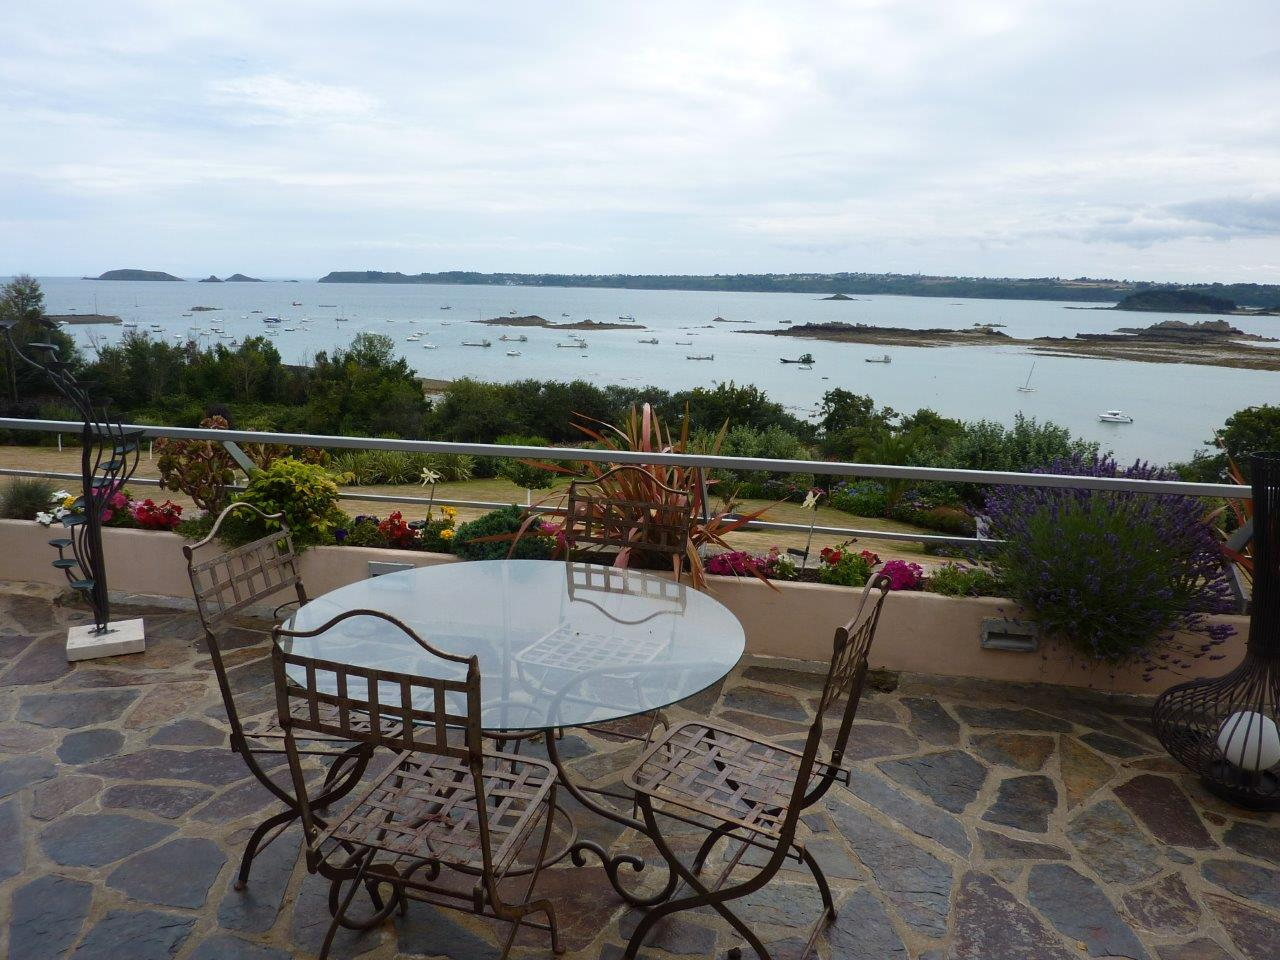 Single Family Home for Sale at Sea View Villa Place de l'eglise Other Brittany, Brittany 22500 France